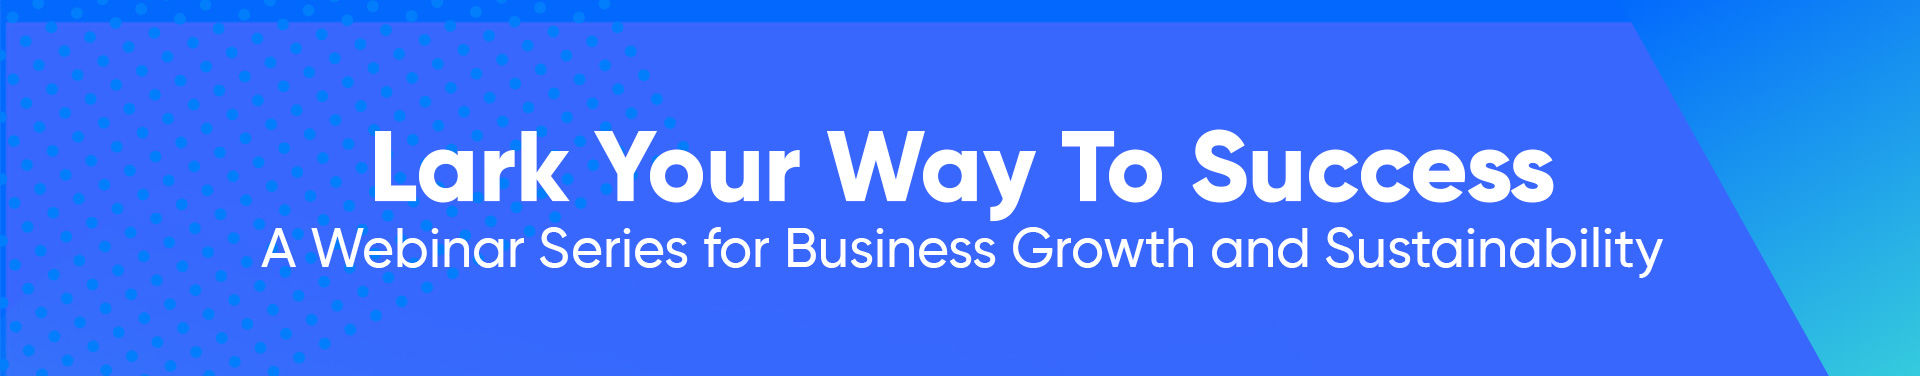 Livestream: Lark Your Way To Success: A webinar series for business growth and sustainability